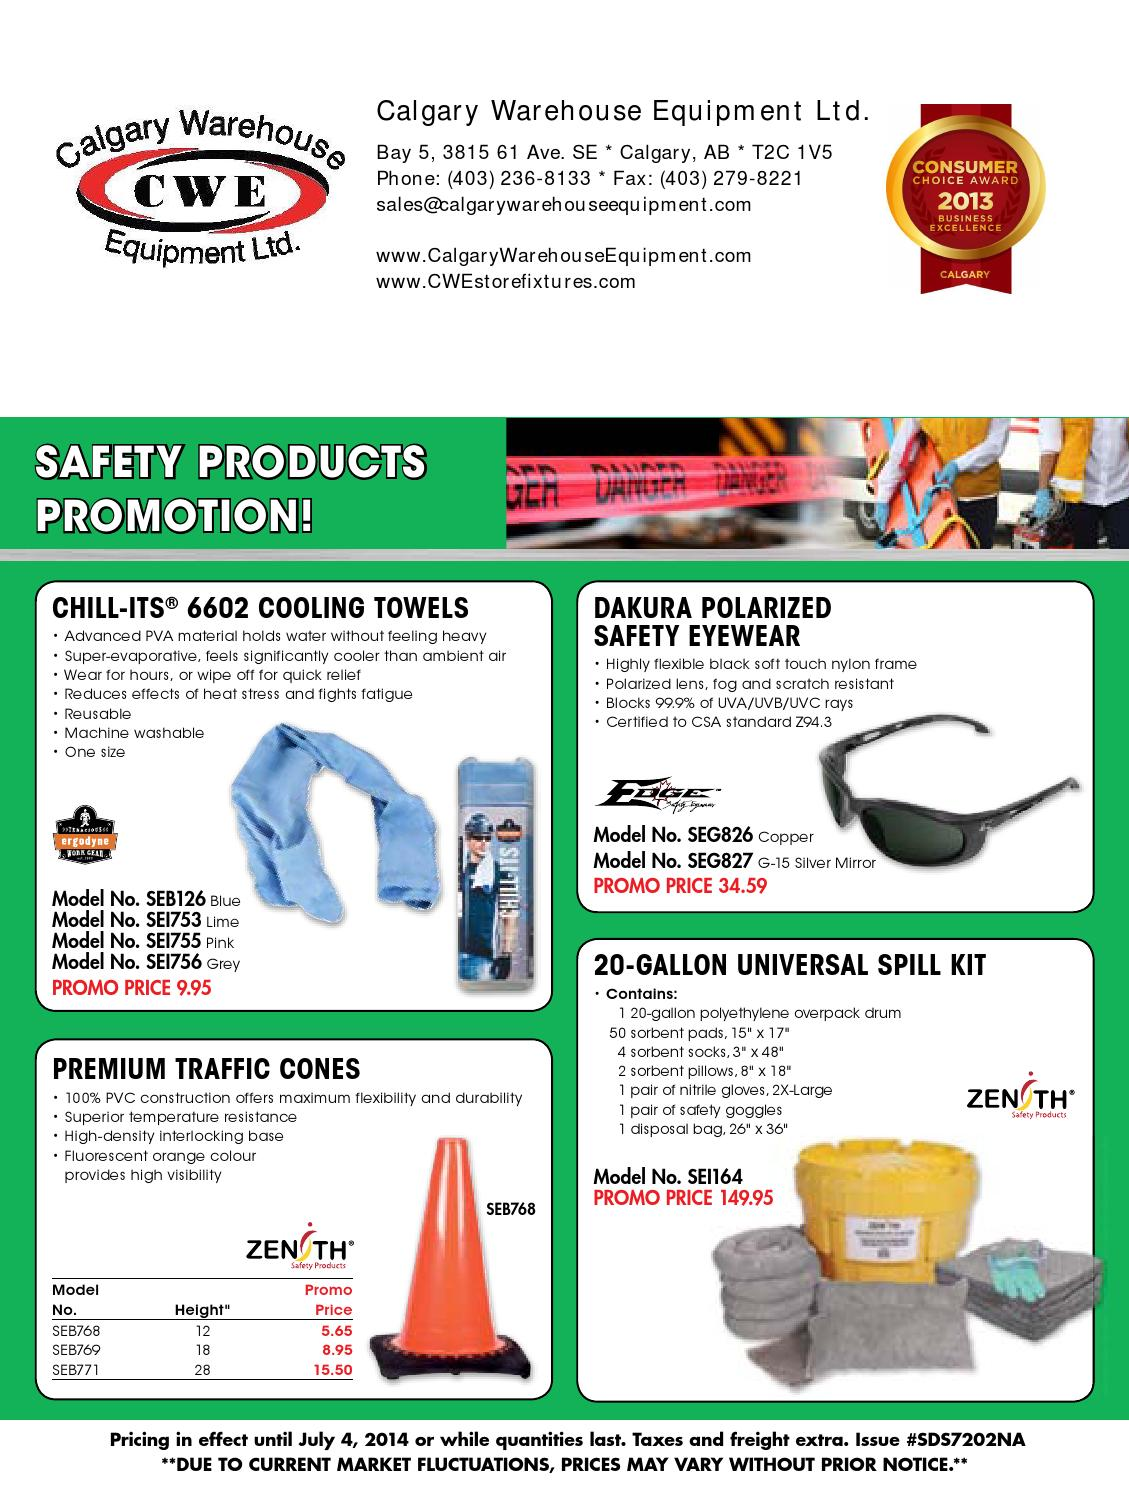 Cwe spring safety flyer 2014 by calgary warehouse equipment ltd cwe spring safety flyer 2014 by calgary warehouse equipment ltd issuu biocorpaavc Choice Image